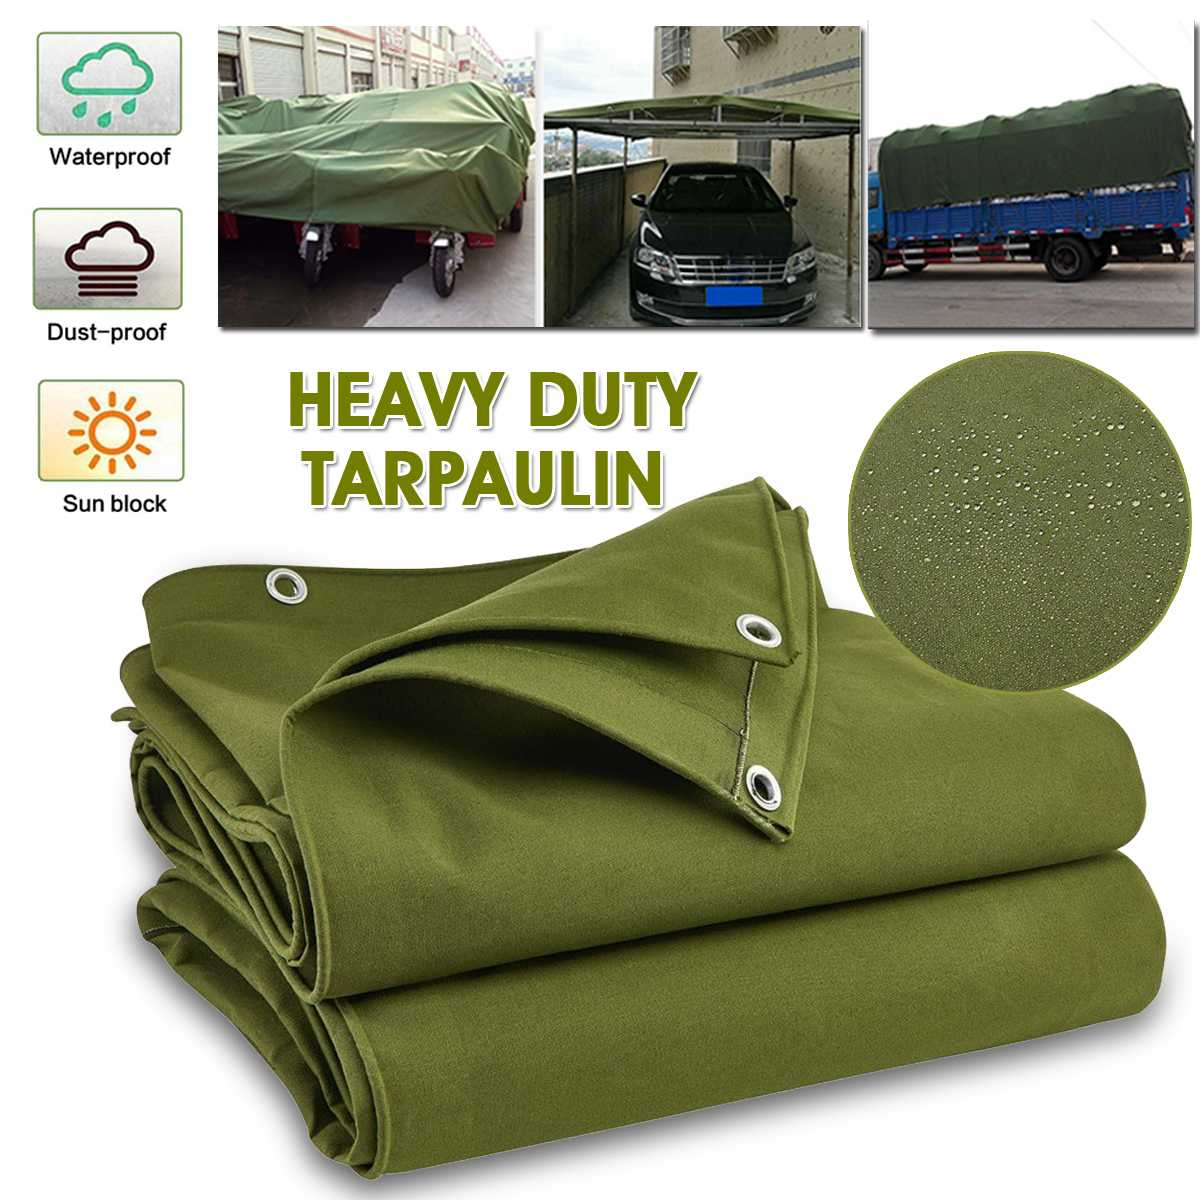 0.5mm Thick Tarpaulin Rainproof Cloth Waterproof Cover Sunshade Awning Wear-resisting Truck Car Canvas Balcony Courtyard Shade